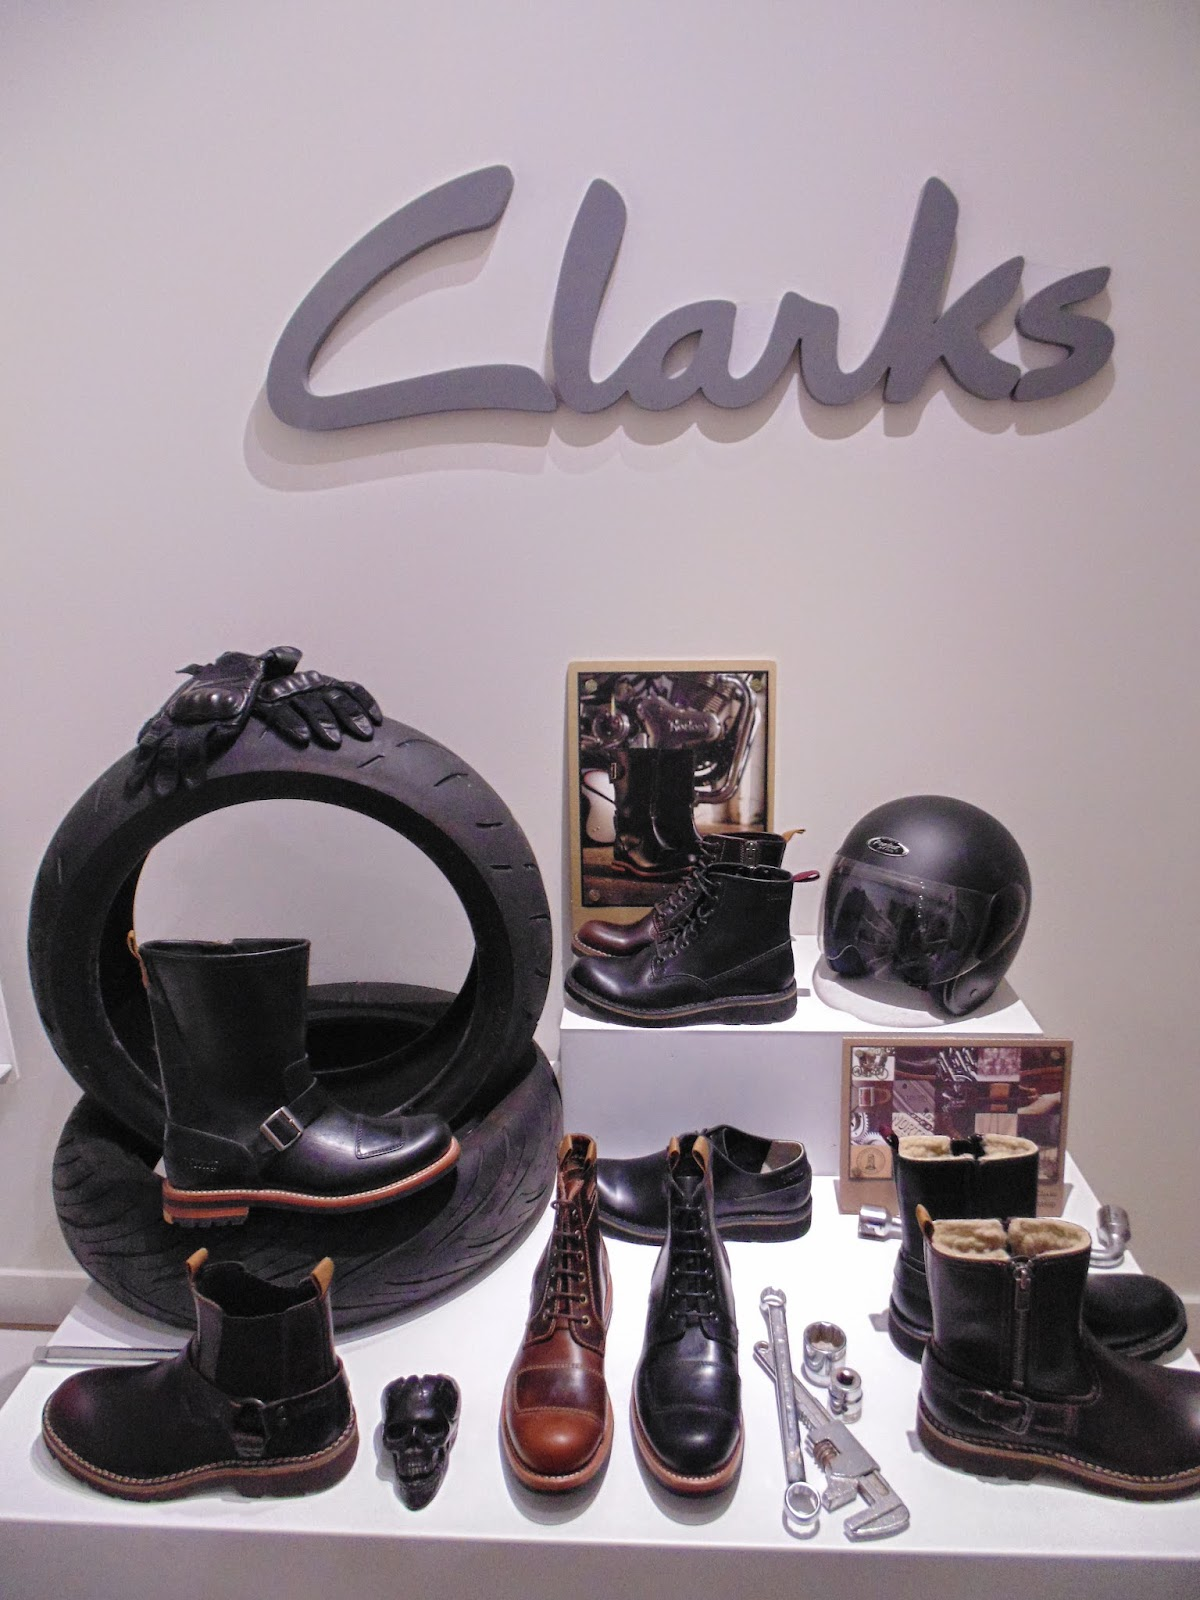 clarks automne hiver 2014/2015